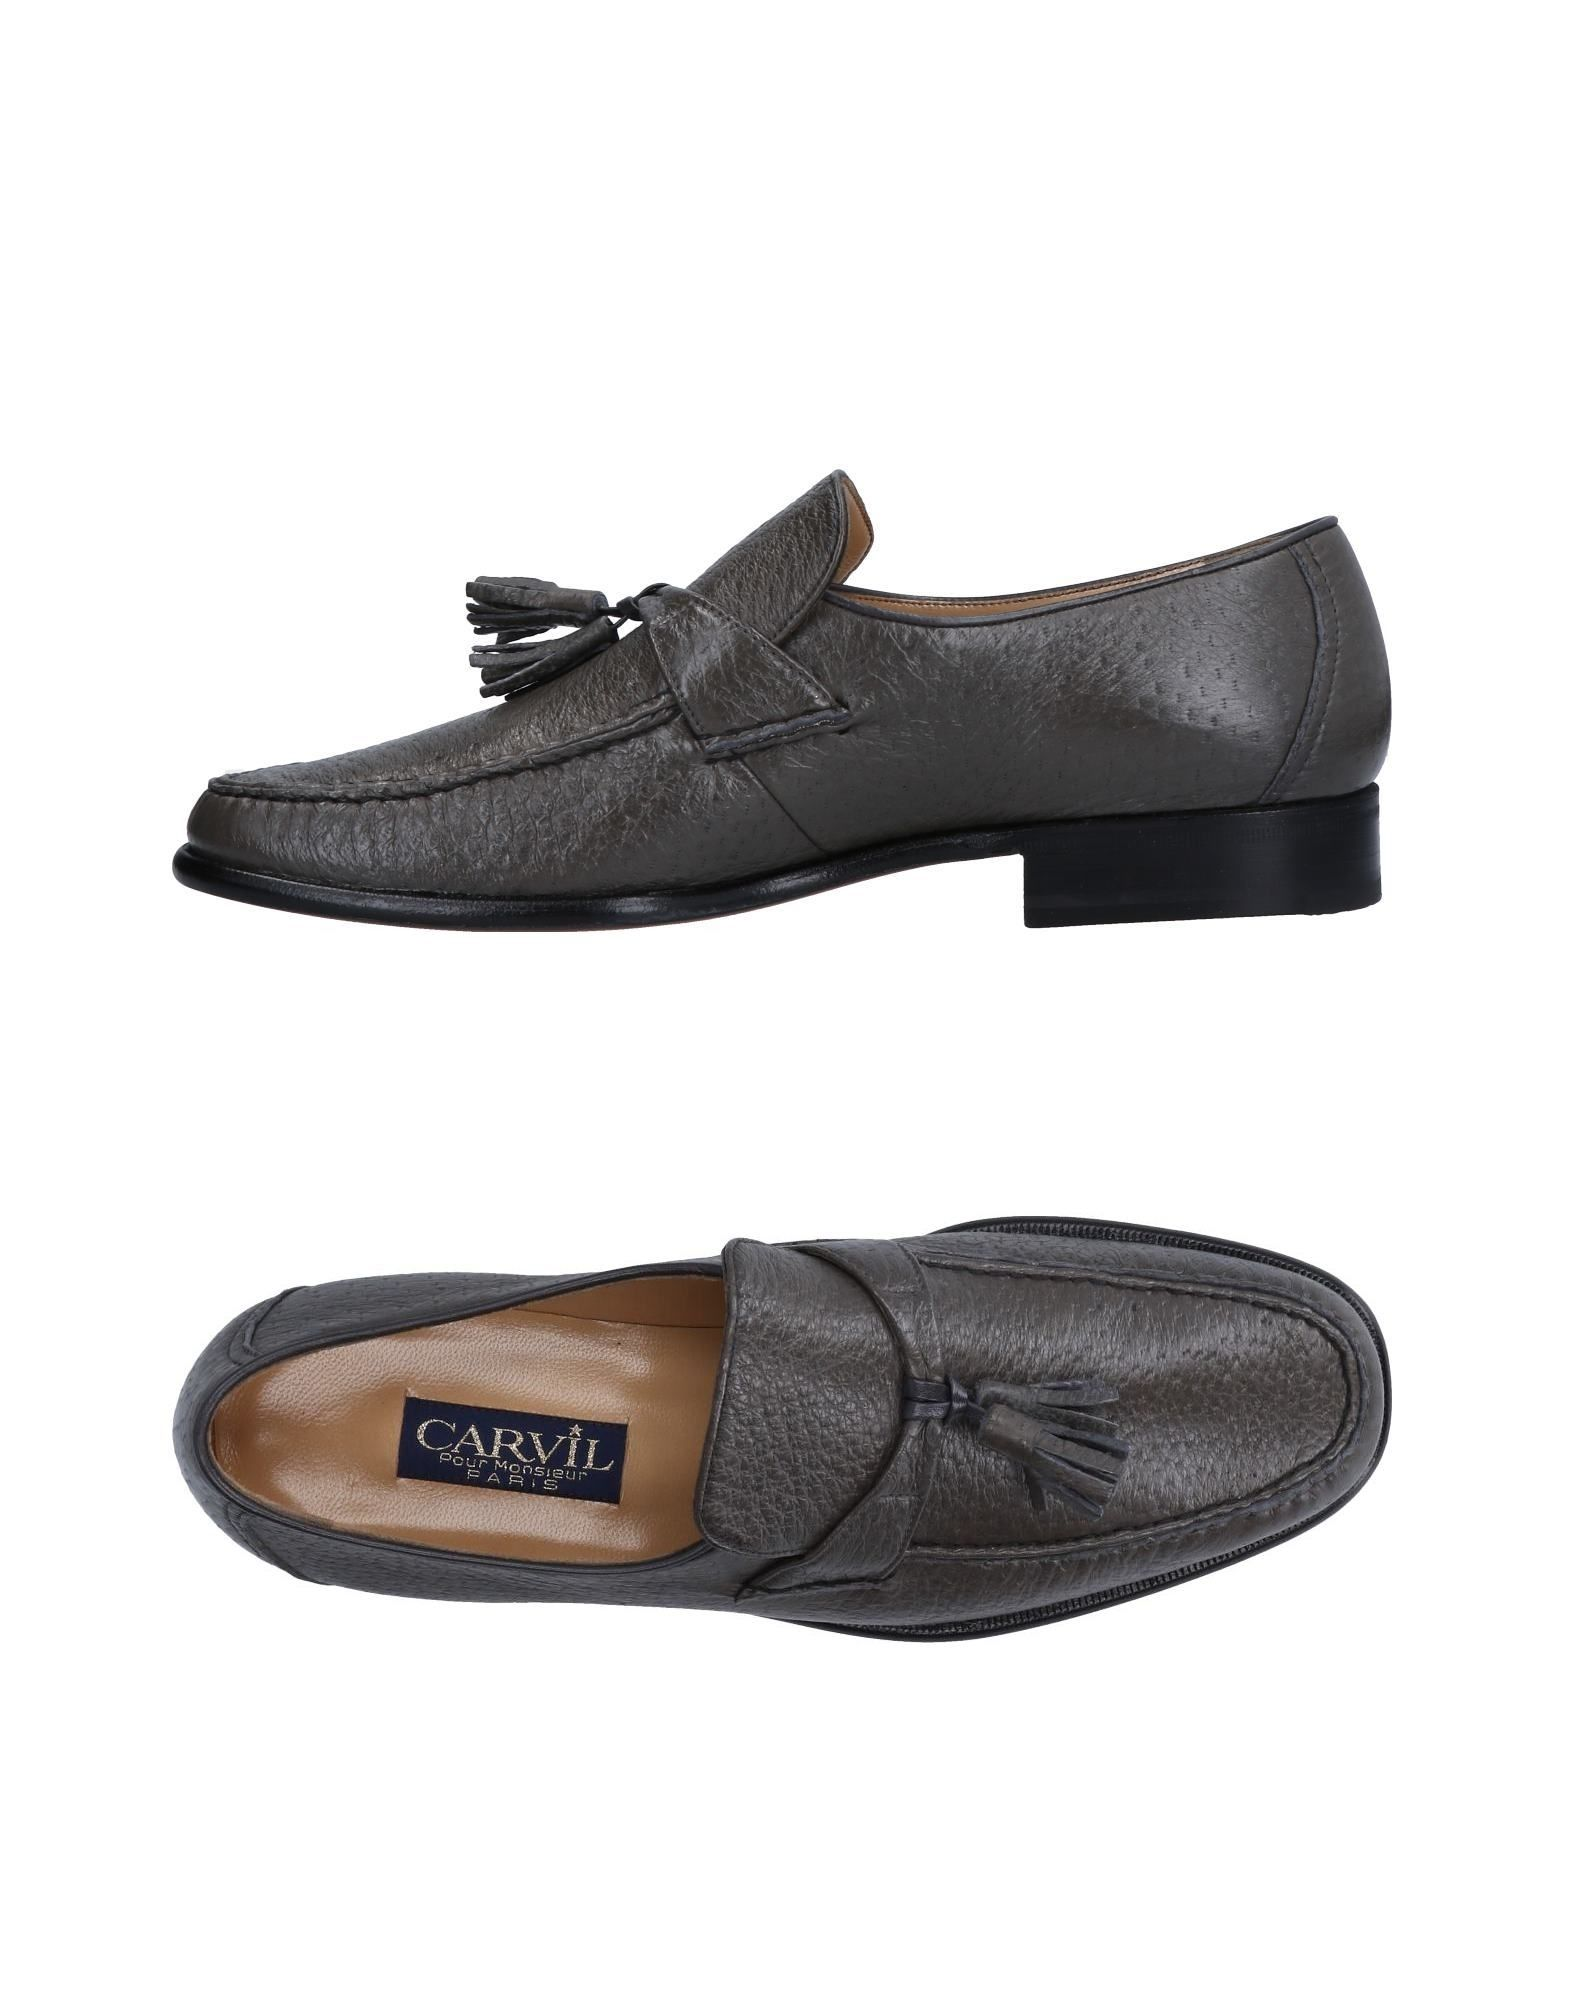 Carvil on Paris Loafers - Men Carvil Paris Loafers online on Carvil  Canada - 11514370MH 239ae8